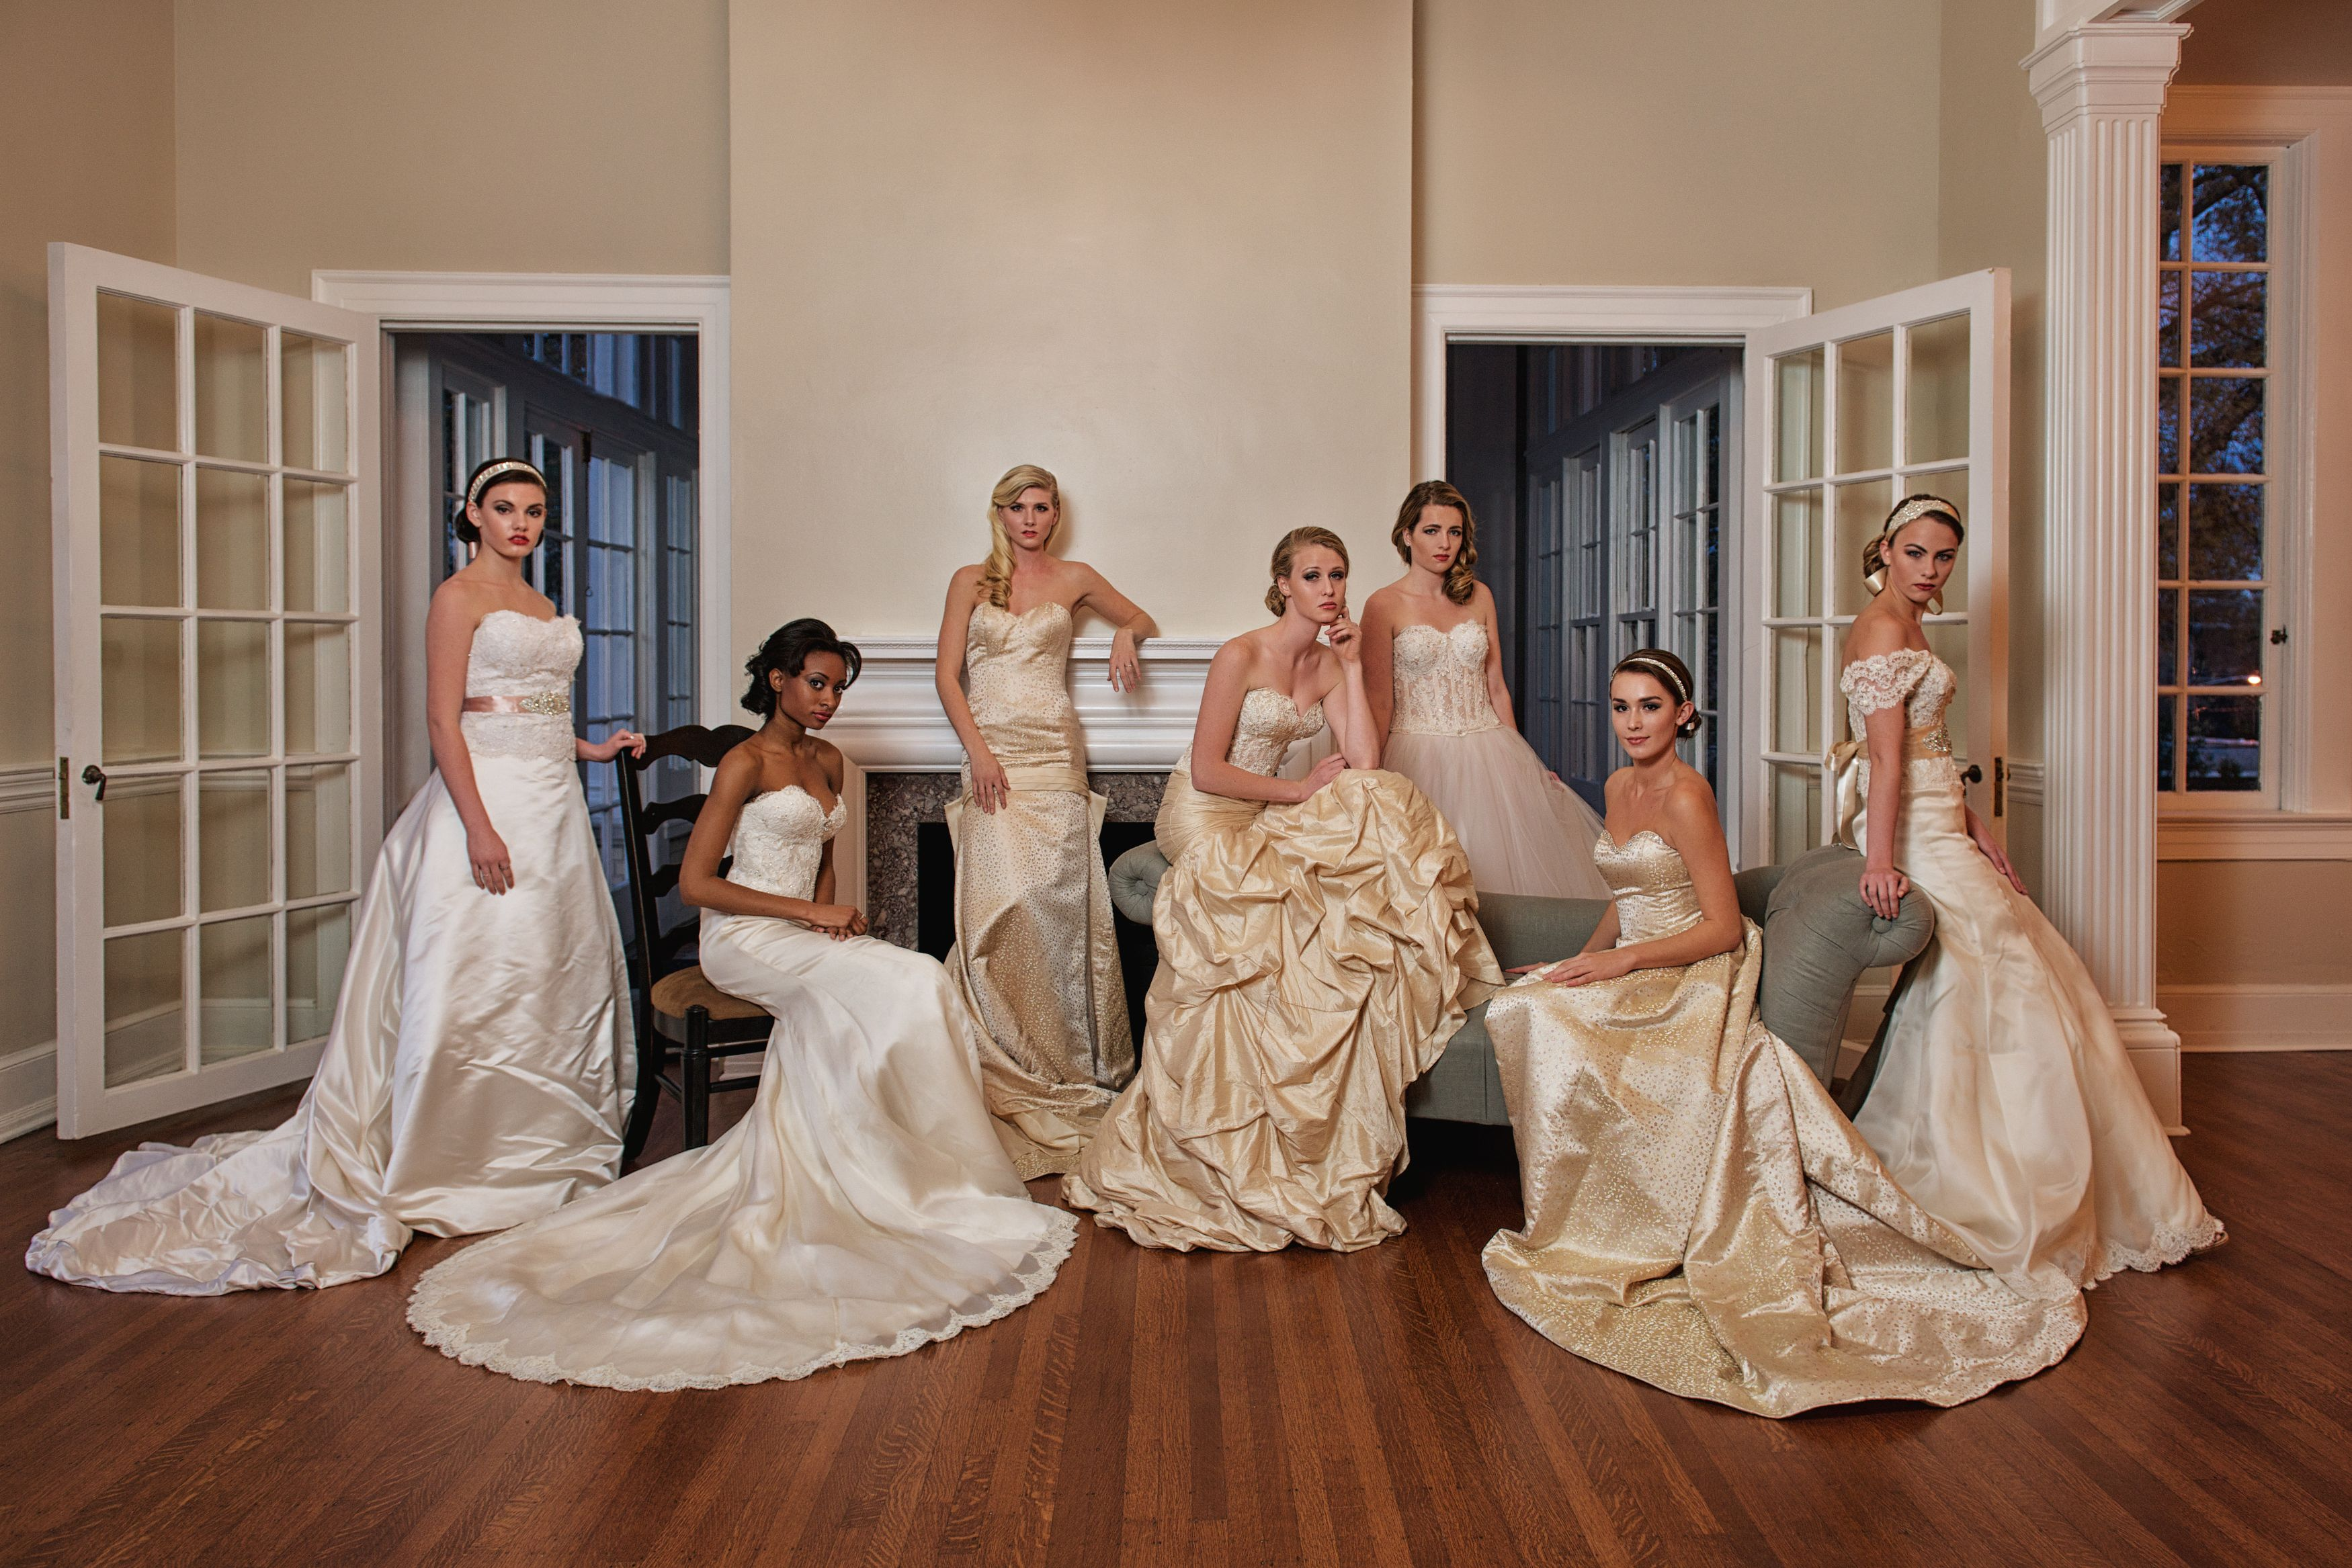 Pixton Design Group: Profiling this Custom Wedding Dress Designer in Charlotte